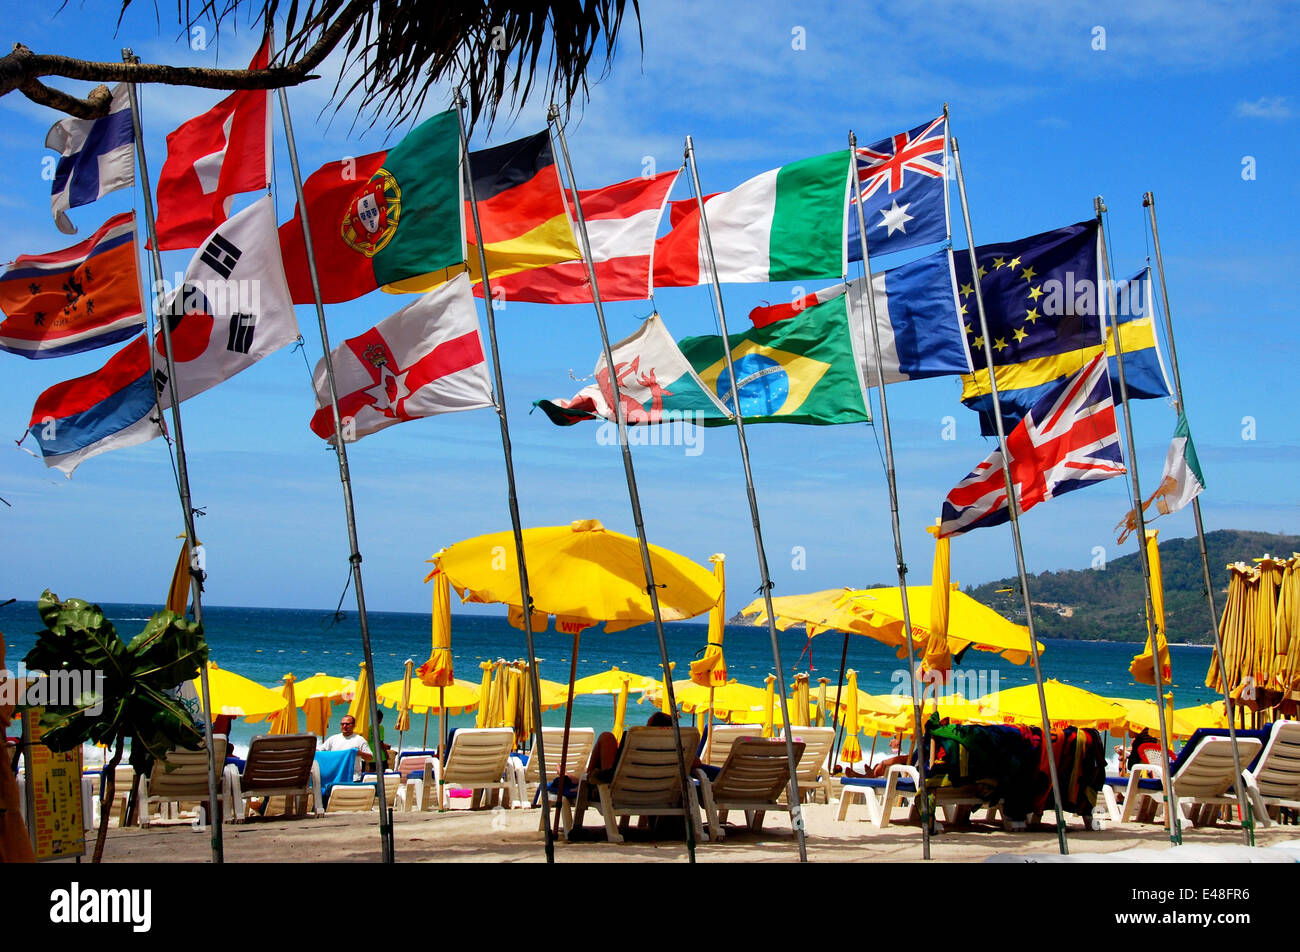 patong city thailand clourful flages of many nations mostly stock